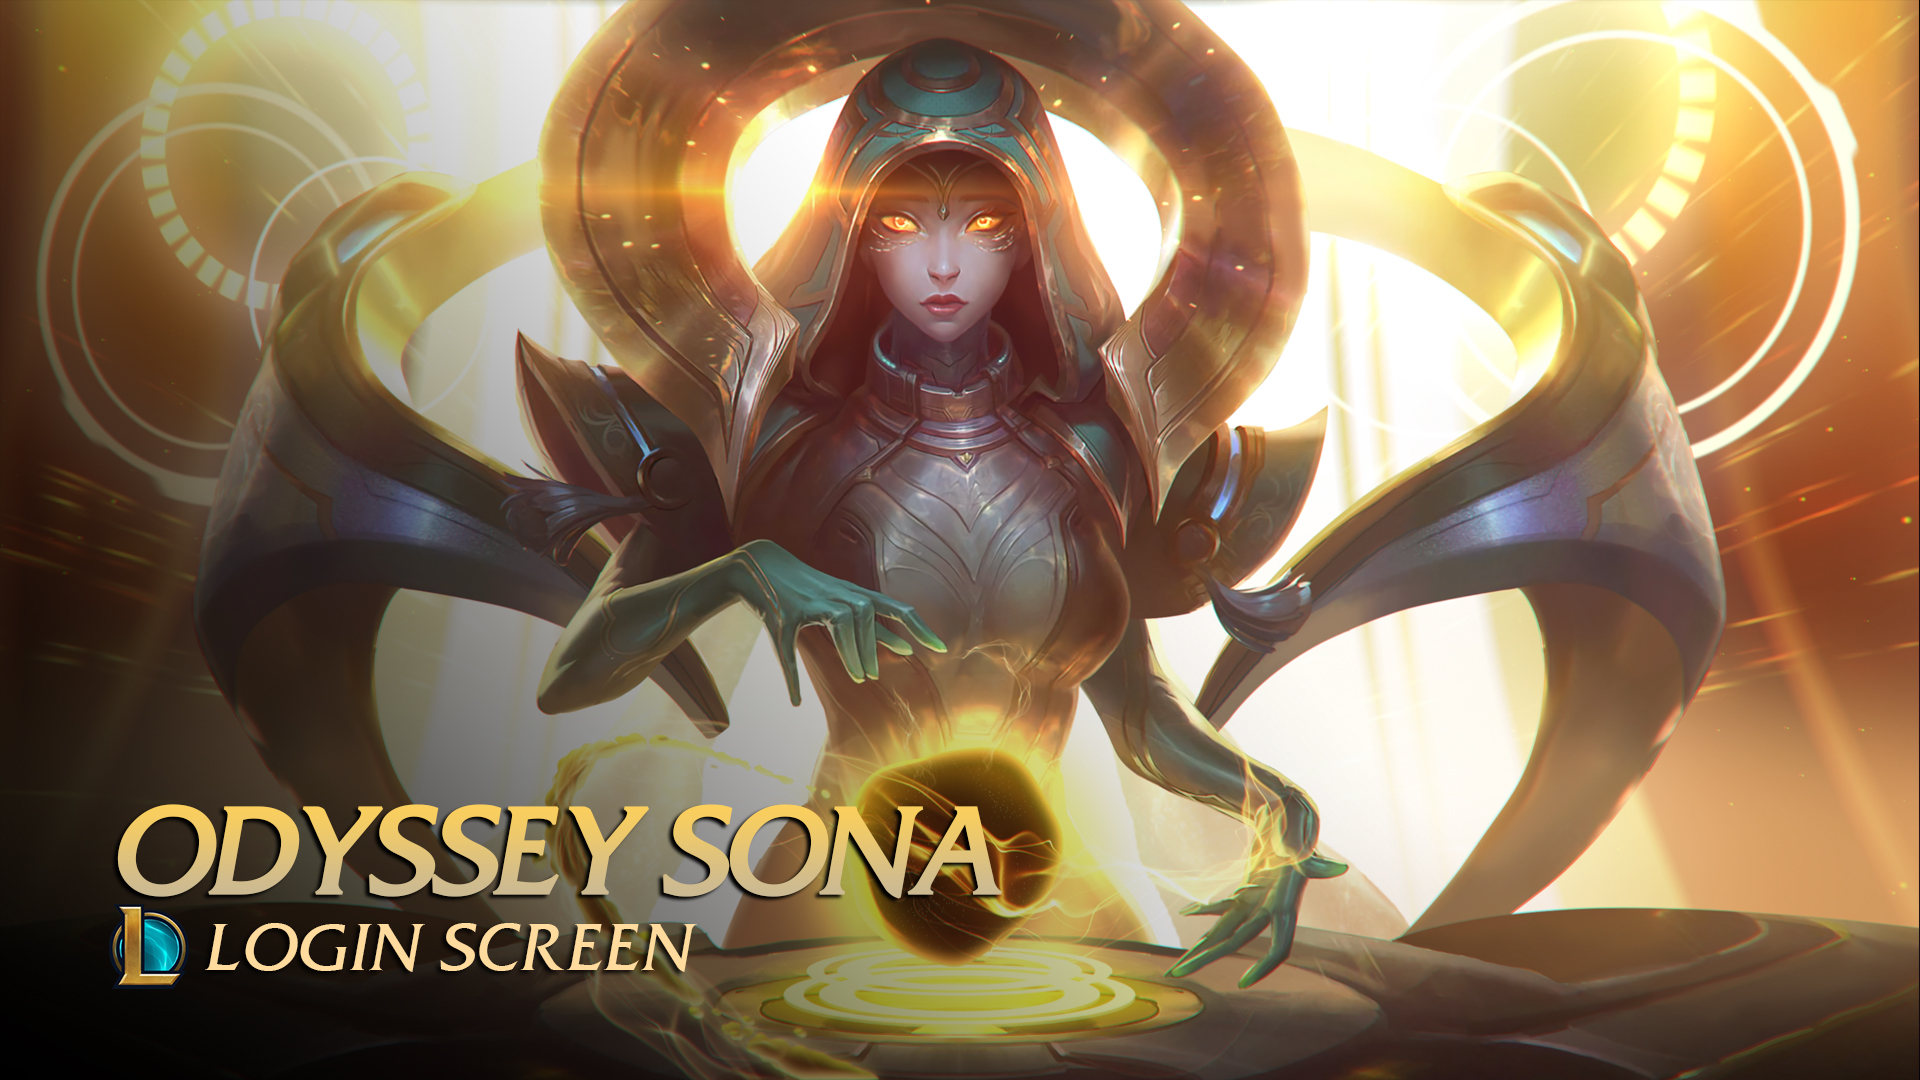 Steam Workshop Odyssey Sona Animated Wallpaper 4k League Of Legends